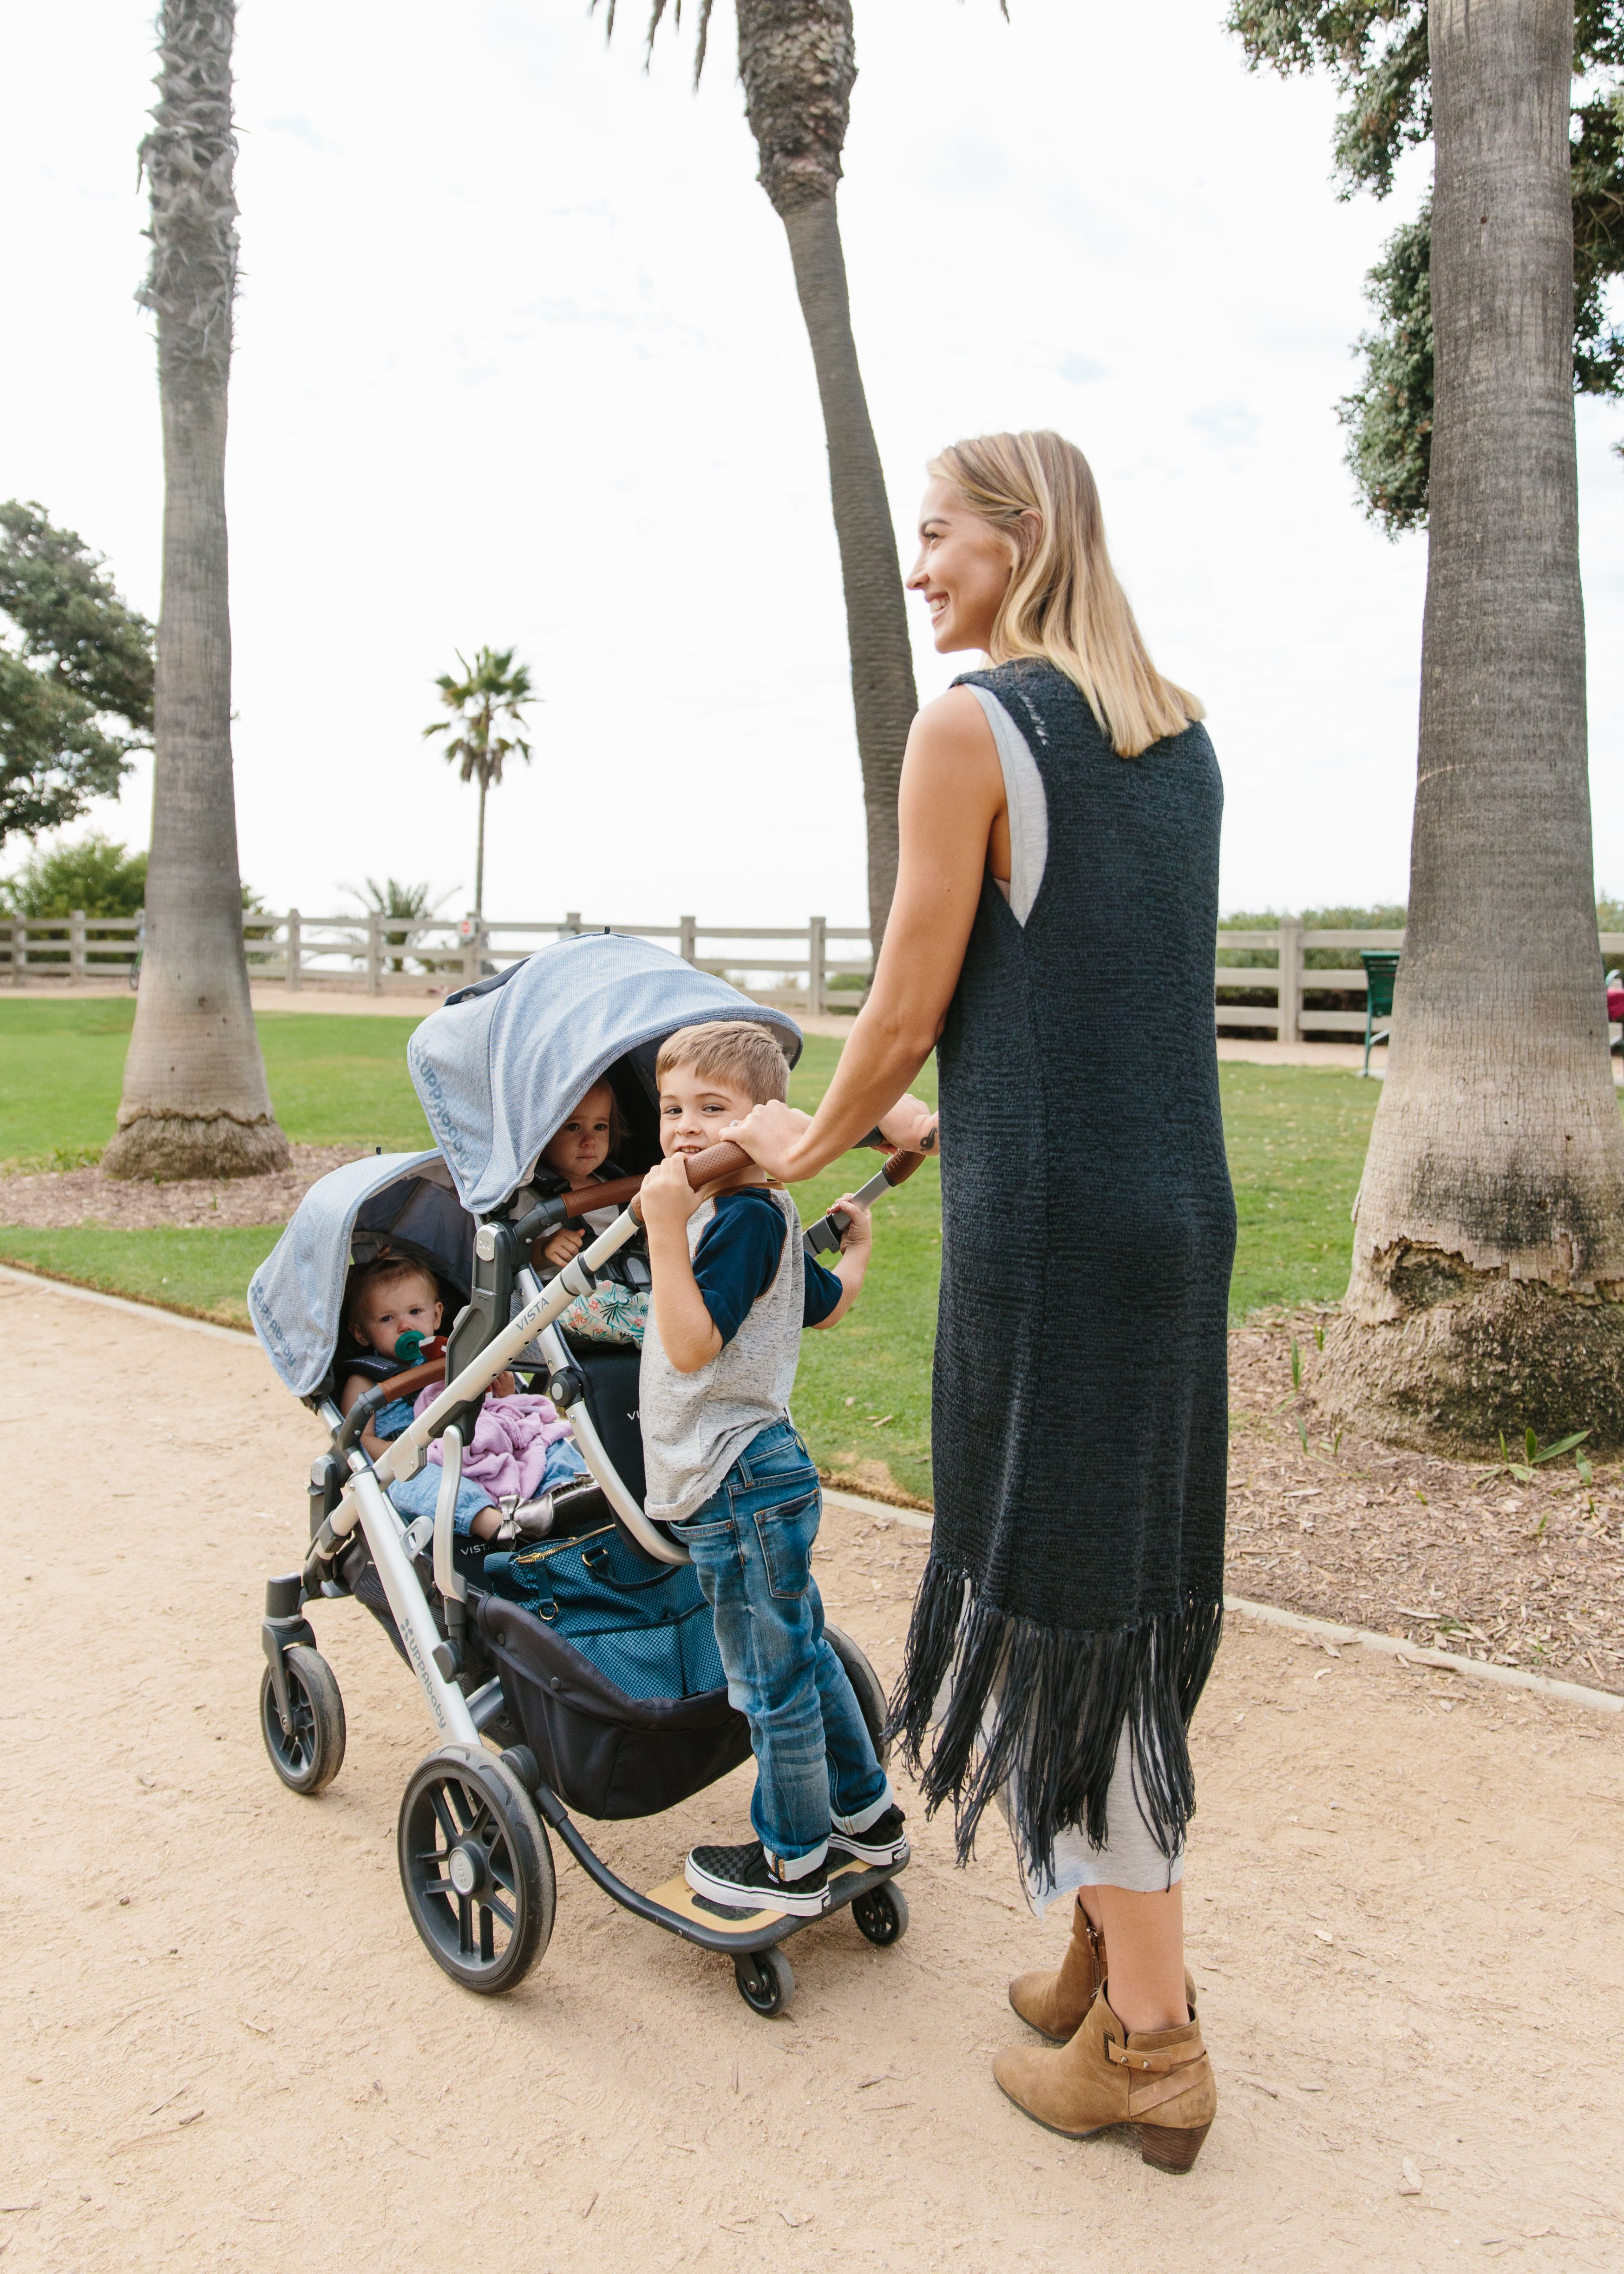 43+ Uppababy vista rumble seat configurations ideas